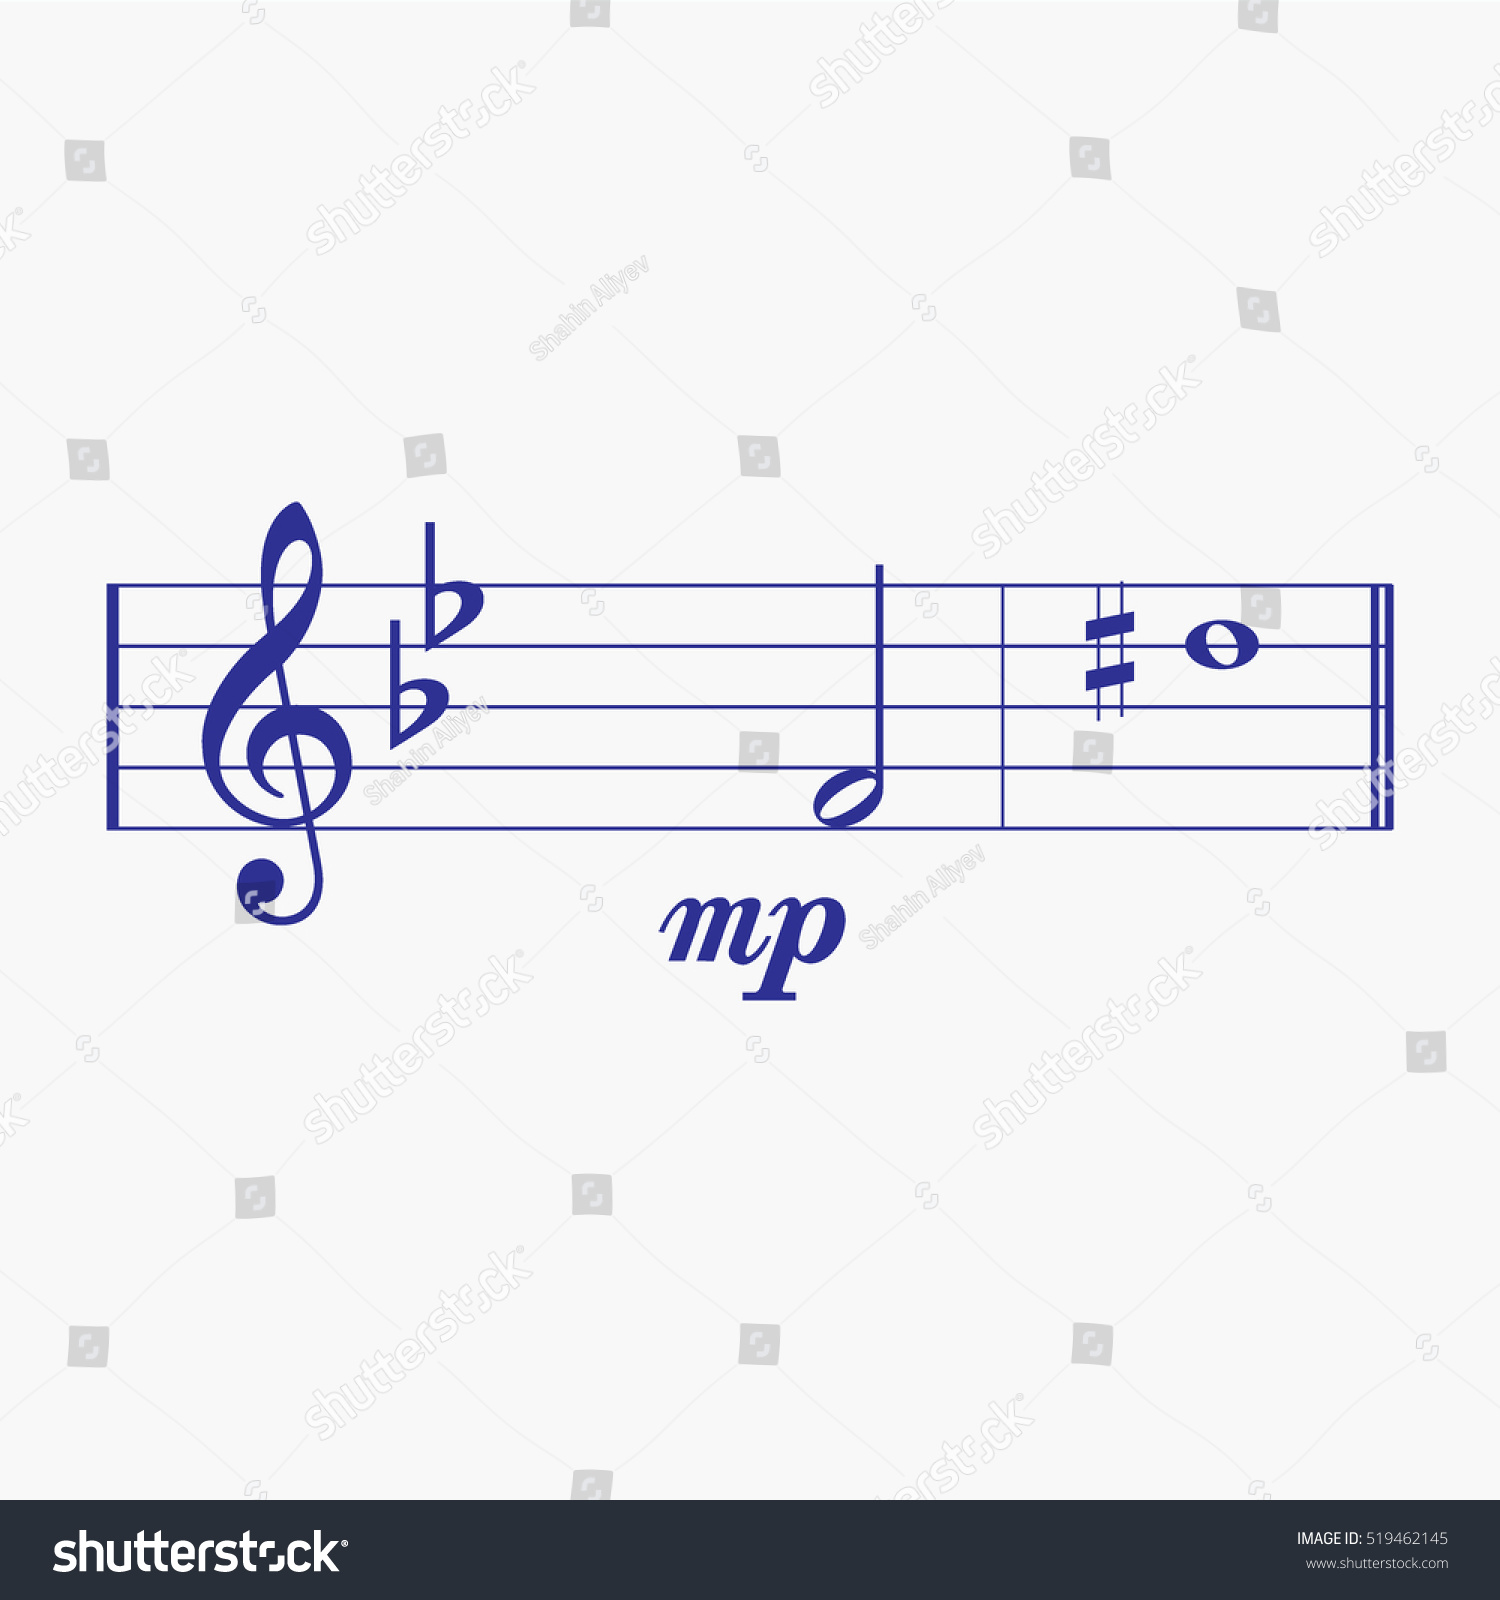 Treble clef music notes quarter rest stock vector 519462145 treble clef music notes quarter rest flat note element music notes icon and symbol biocorpaavc Gallery